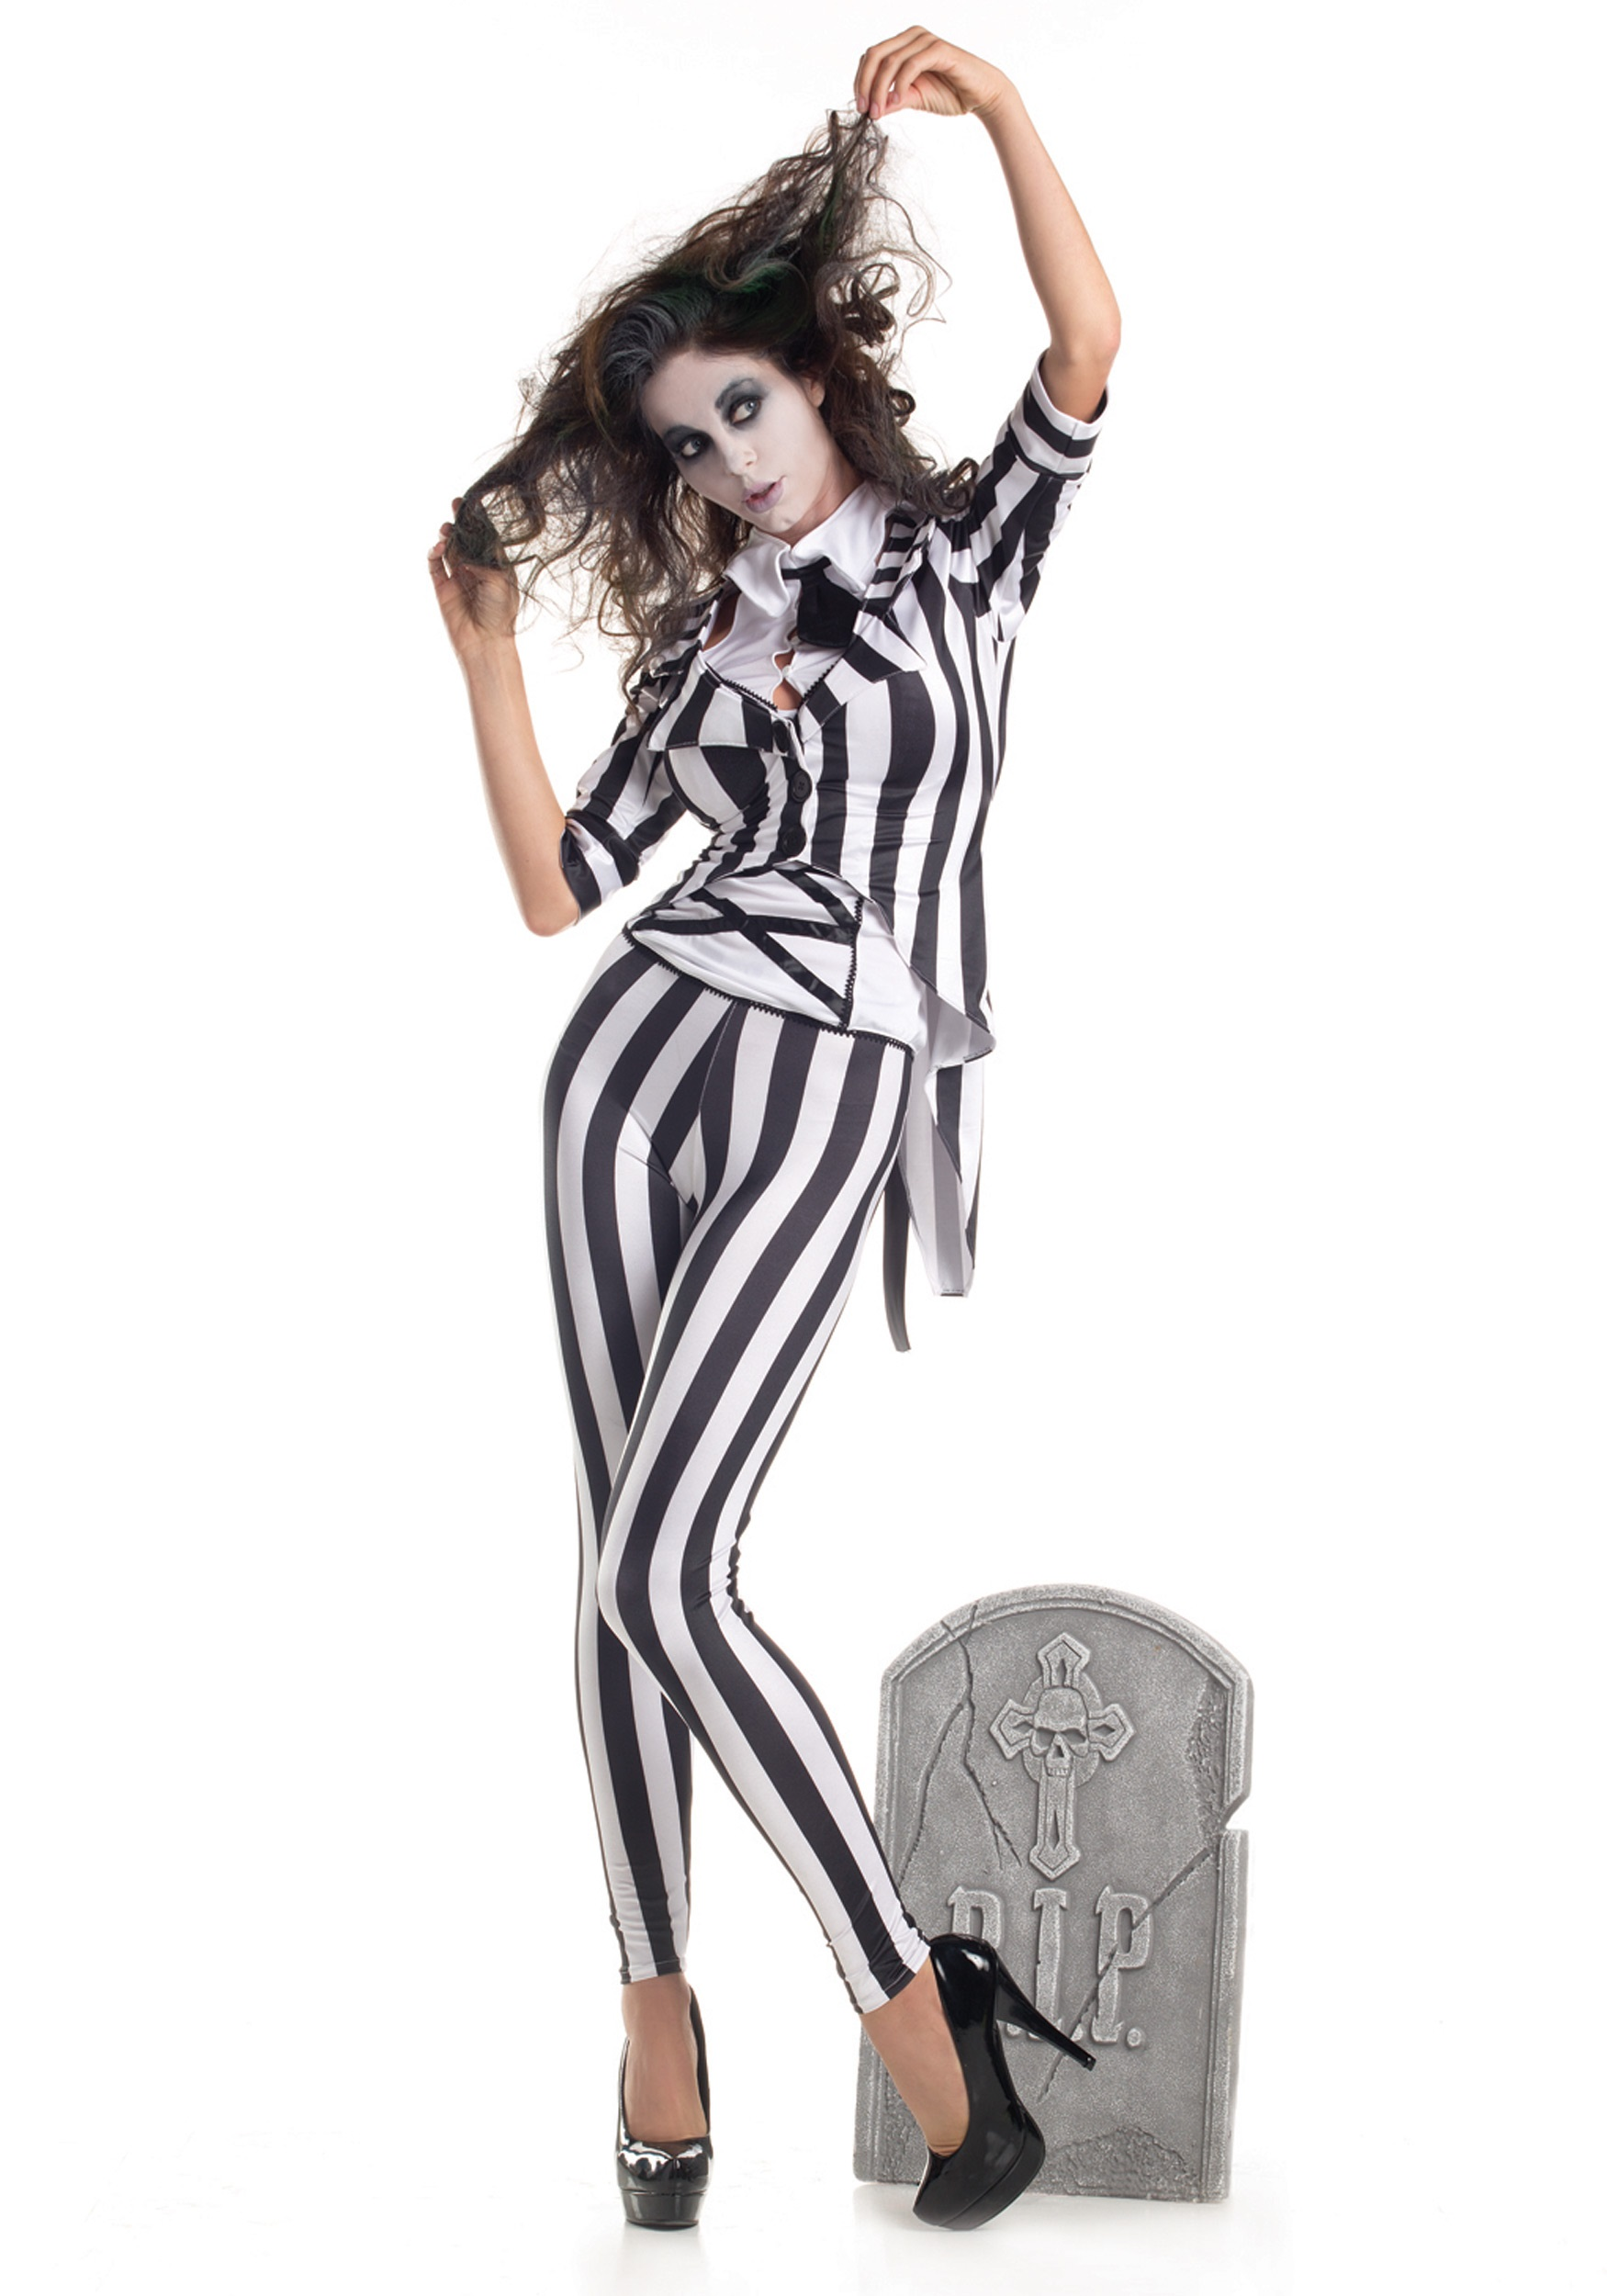 And My Halloween Costume Is